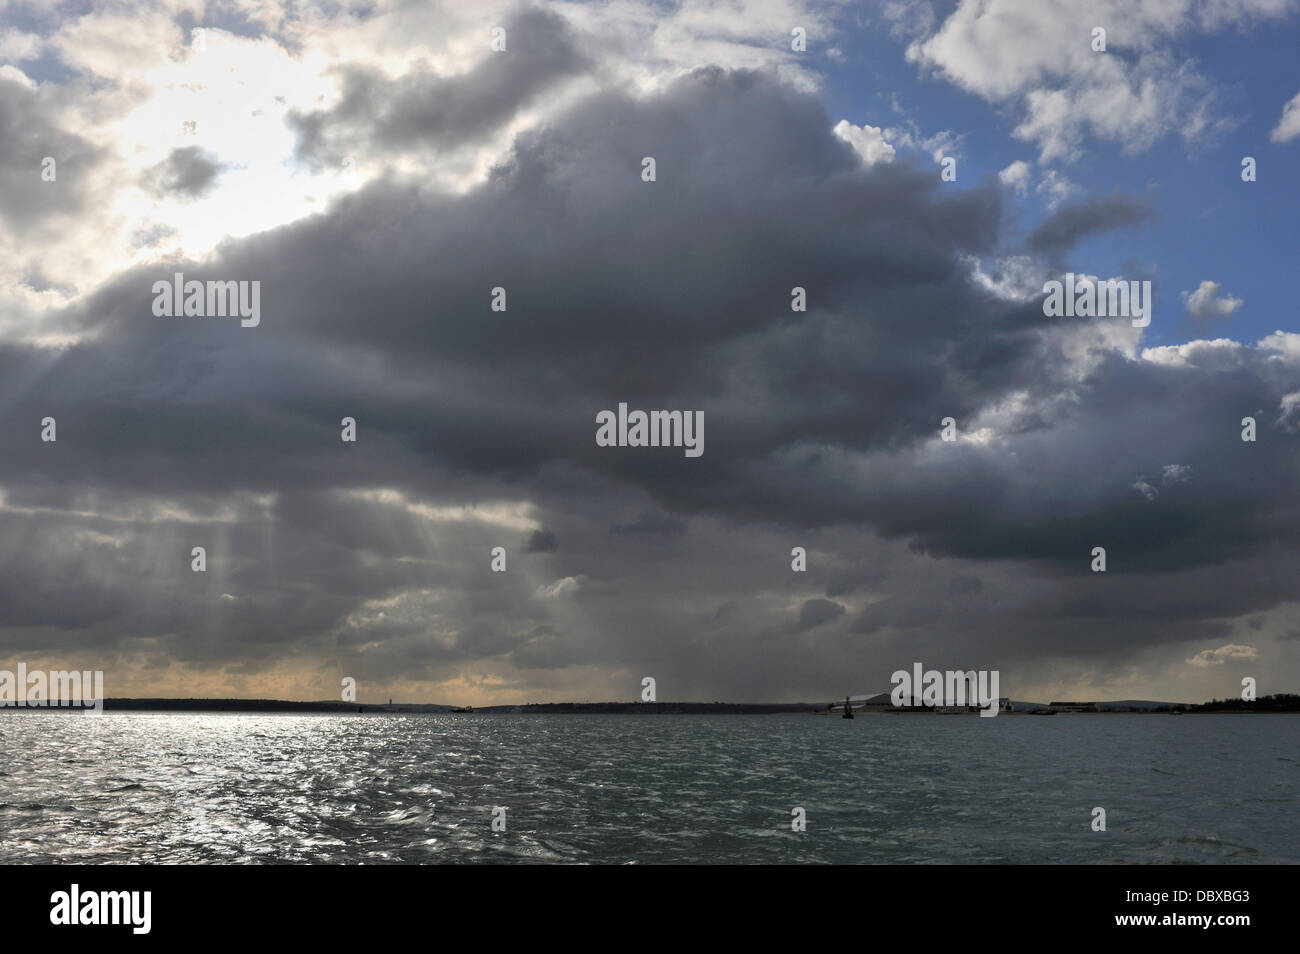 Cumulonimbus clouds over the Solent, Hampshire, England UK - Stock Image